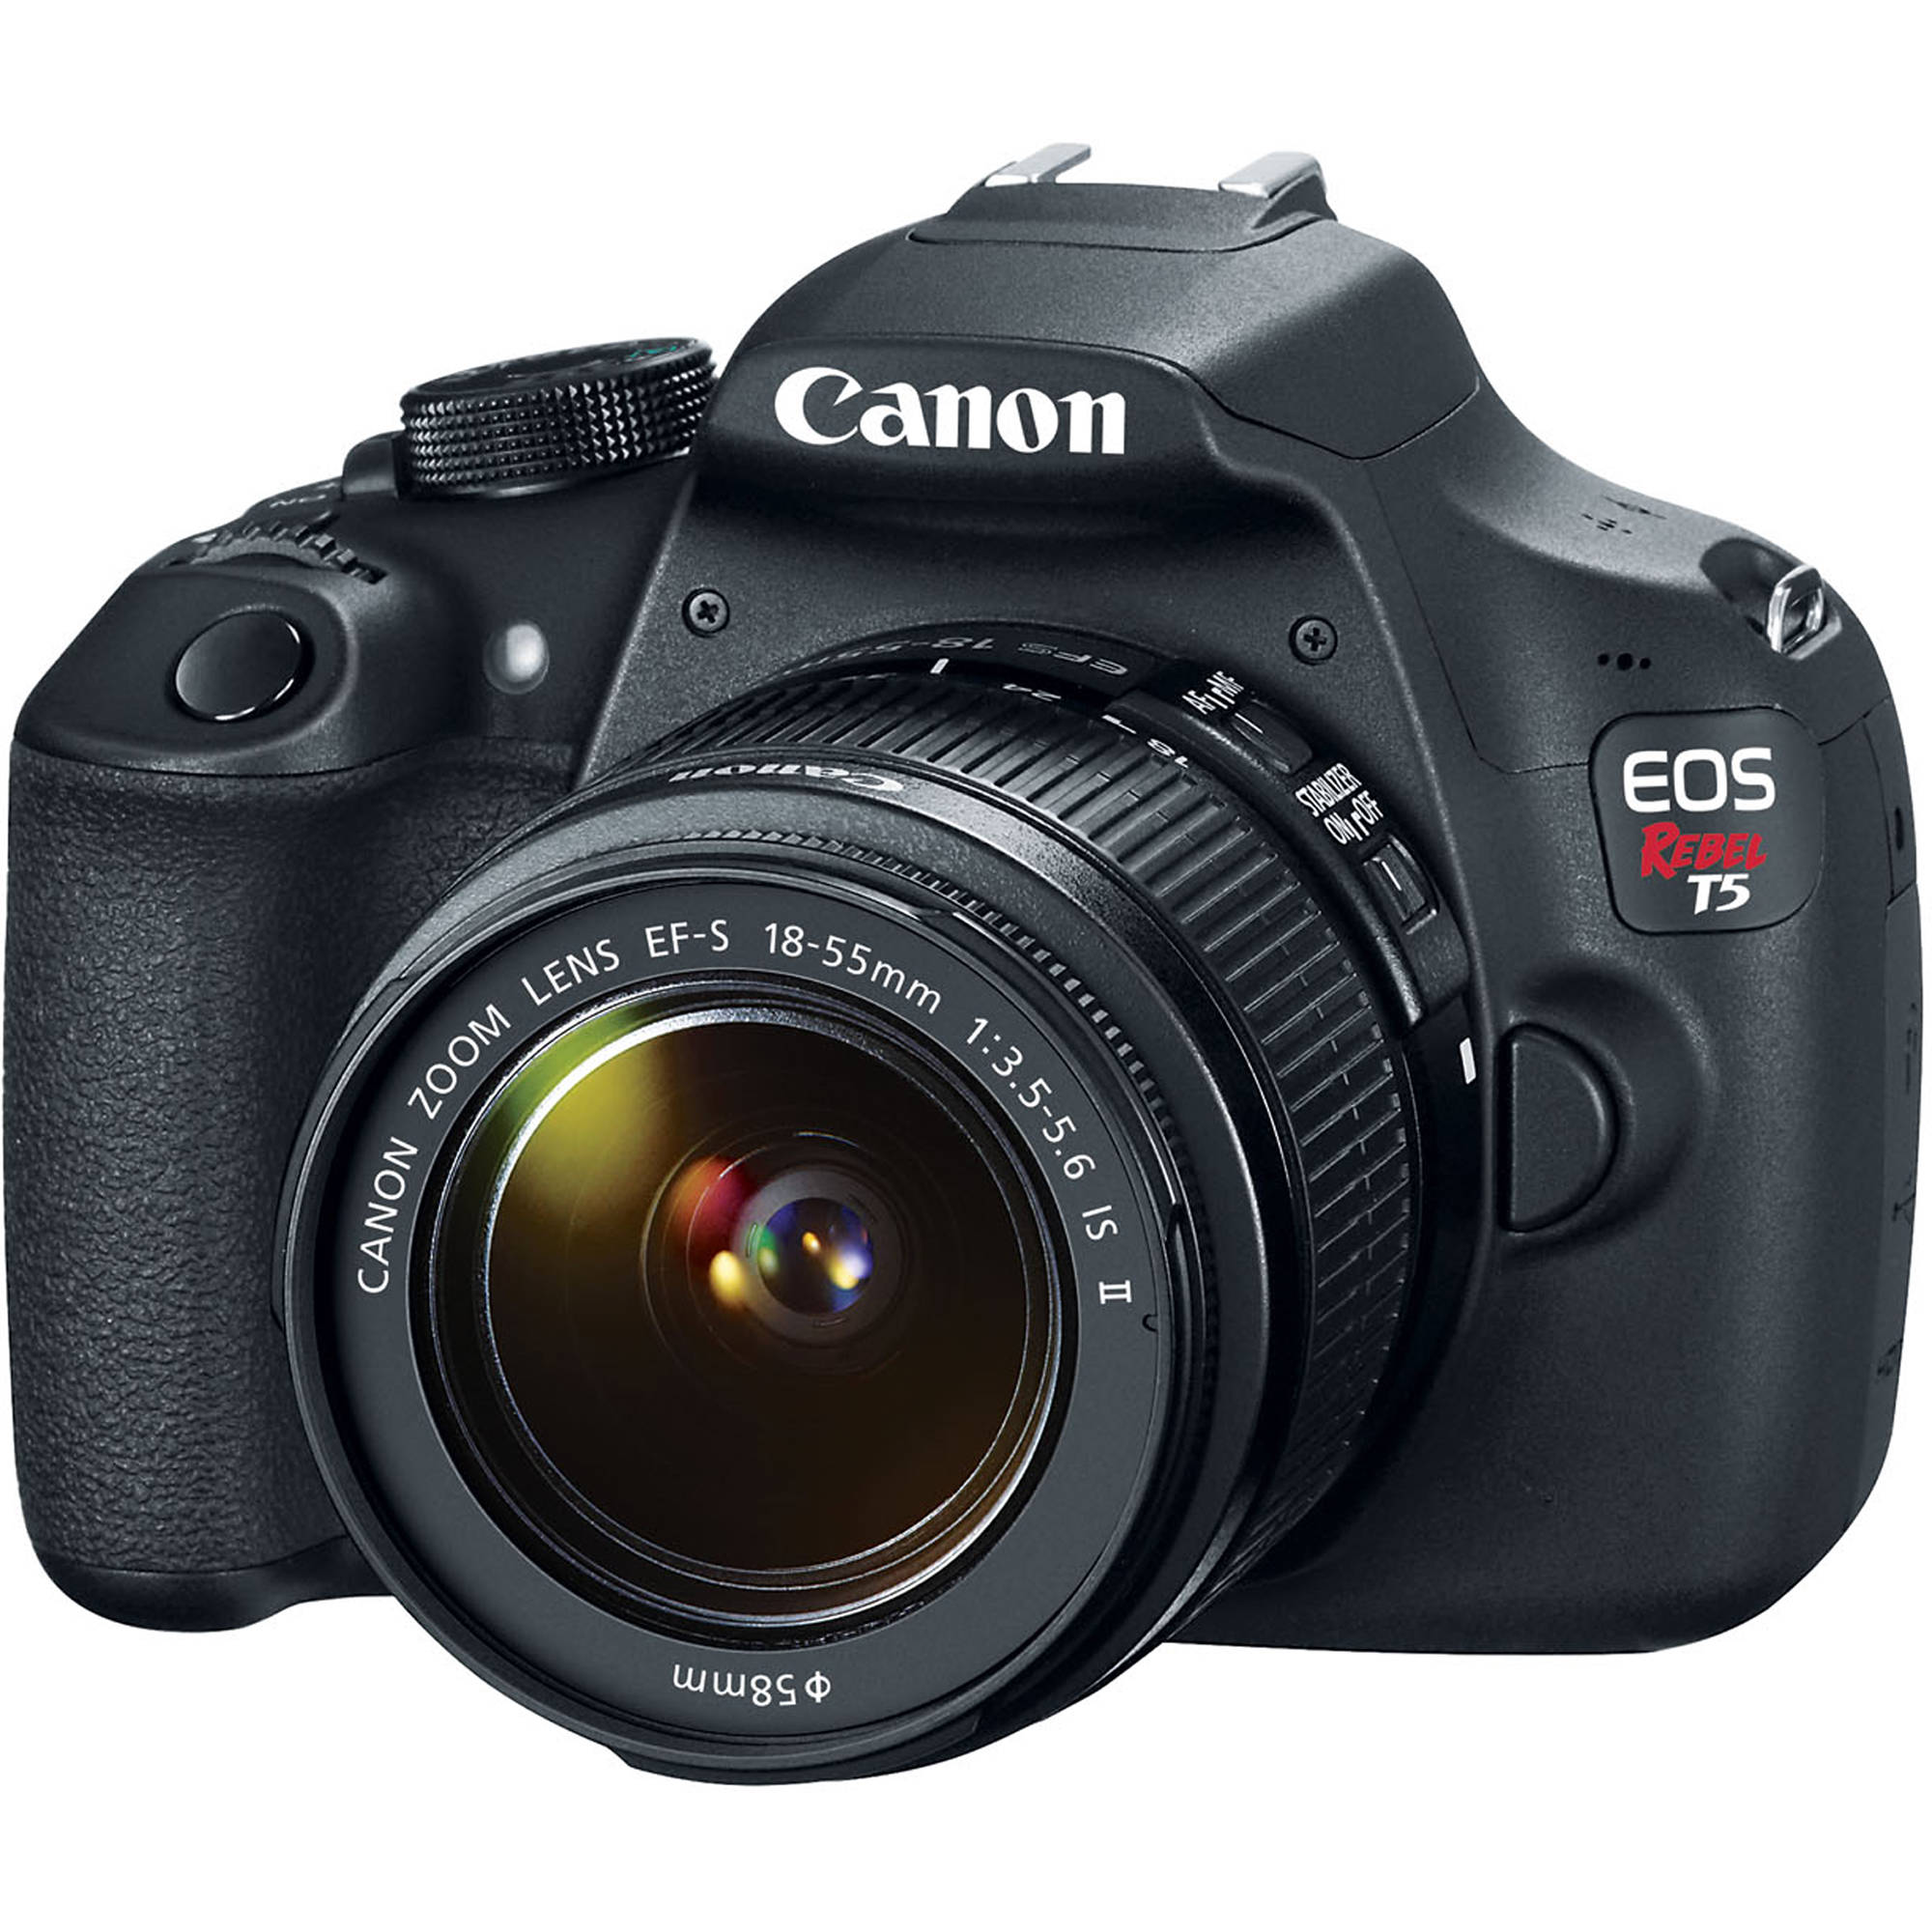 Canon T5 EOS Rebel DSLR Camera with EF-S 18-55mm IS II 9126B003 ...